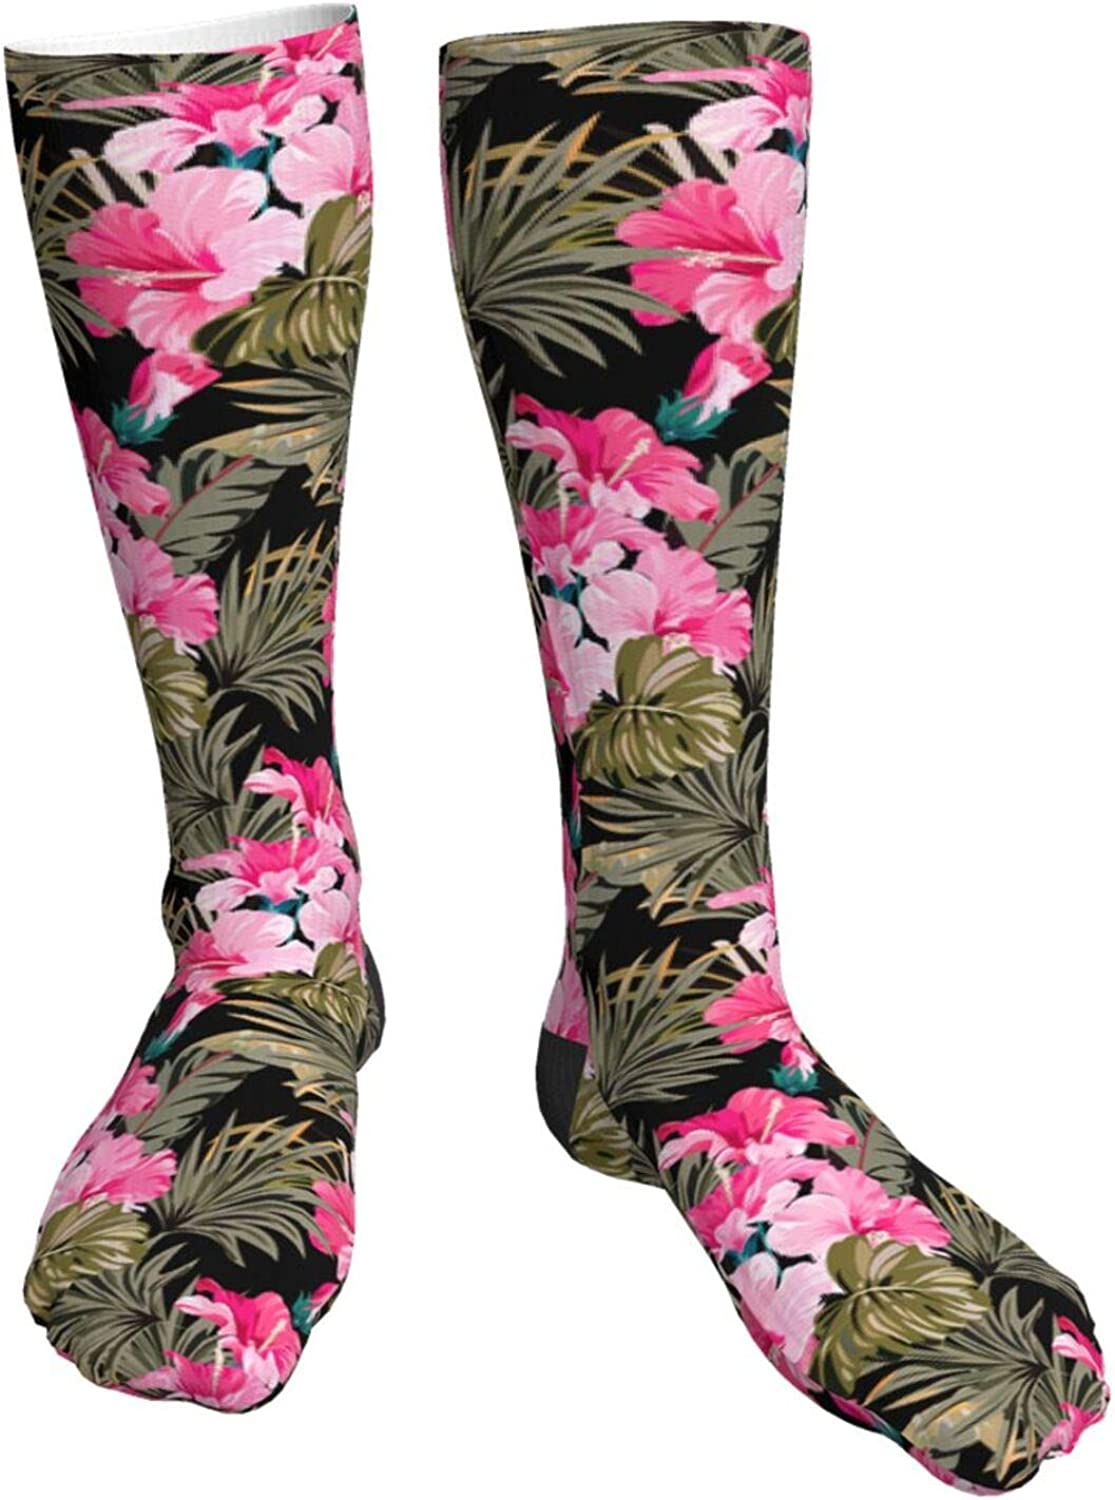 Watercolor Zebra Novelty Crazy Crew F Knee High Max 55% sold out OFF Socks Tube